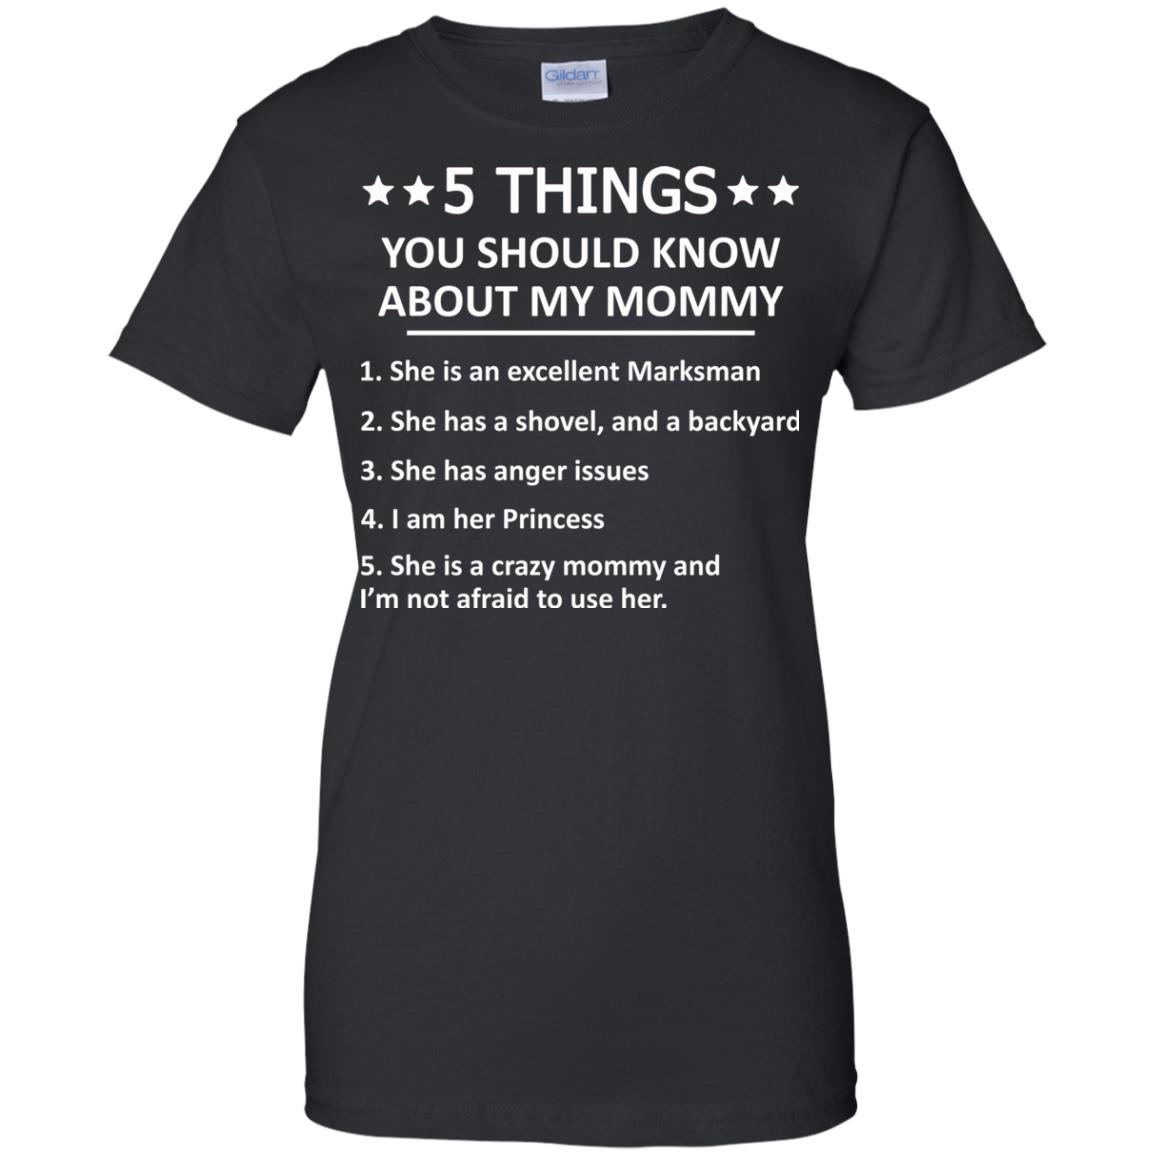 image 1315px 5 Things you should know about my mommy t shirt, hoodies, tank